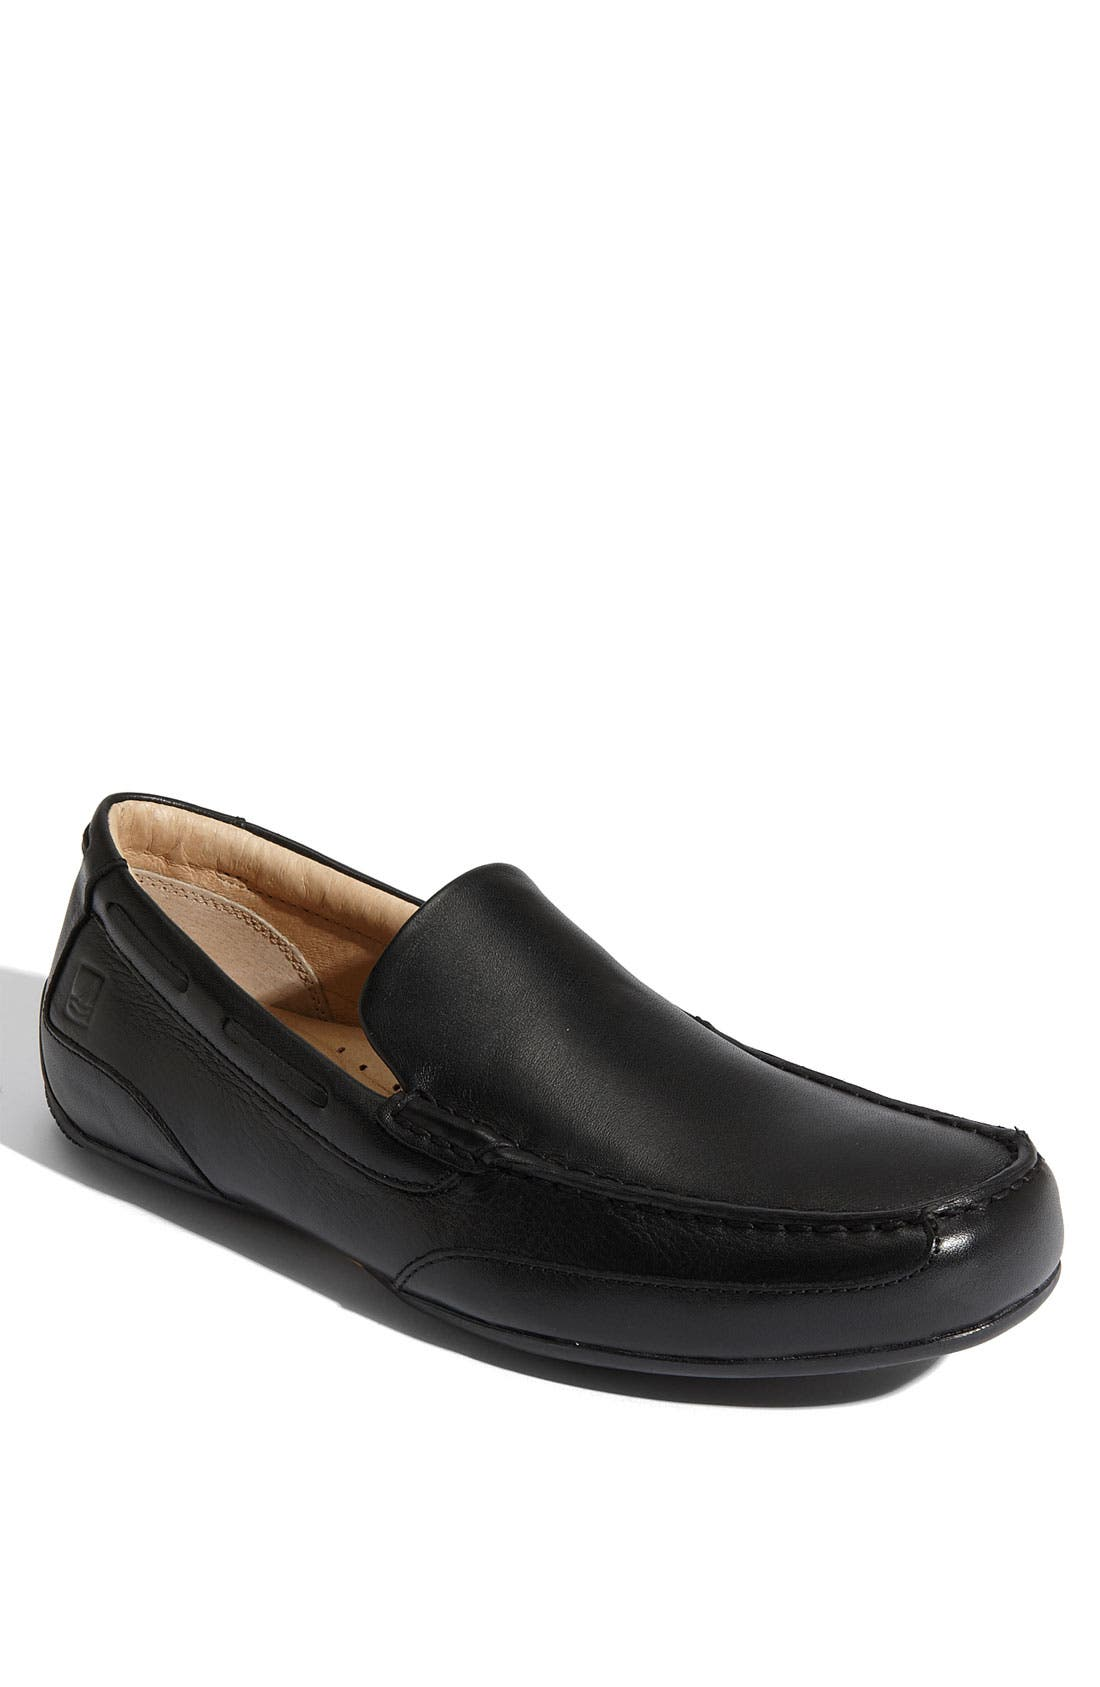 Alternate Image 1 Selected - Sperry Top-Sider® 'Navigator Venetian' Driving Shoe